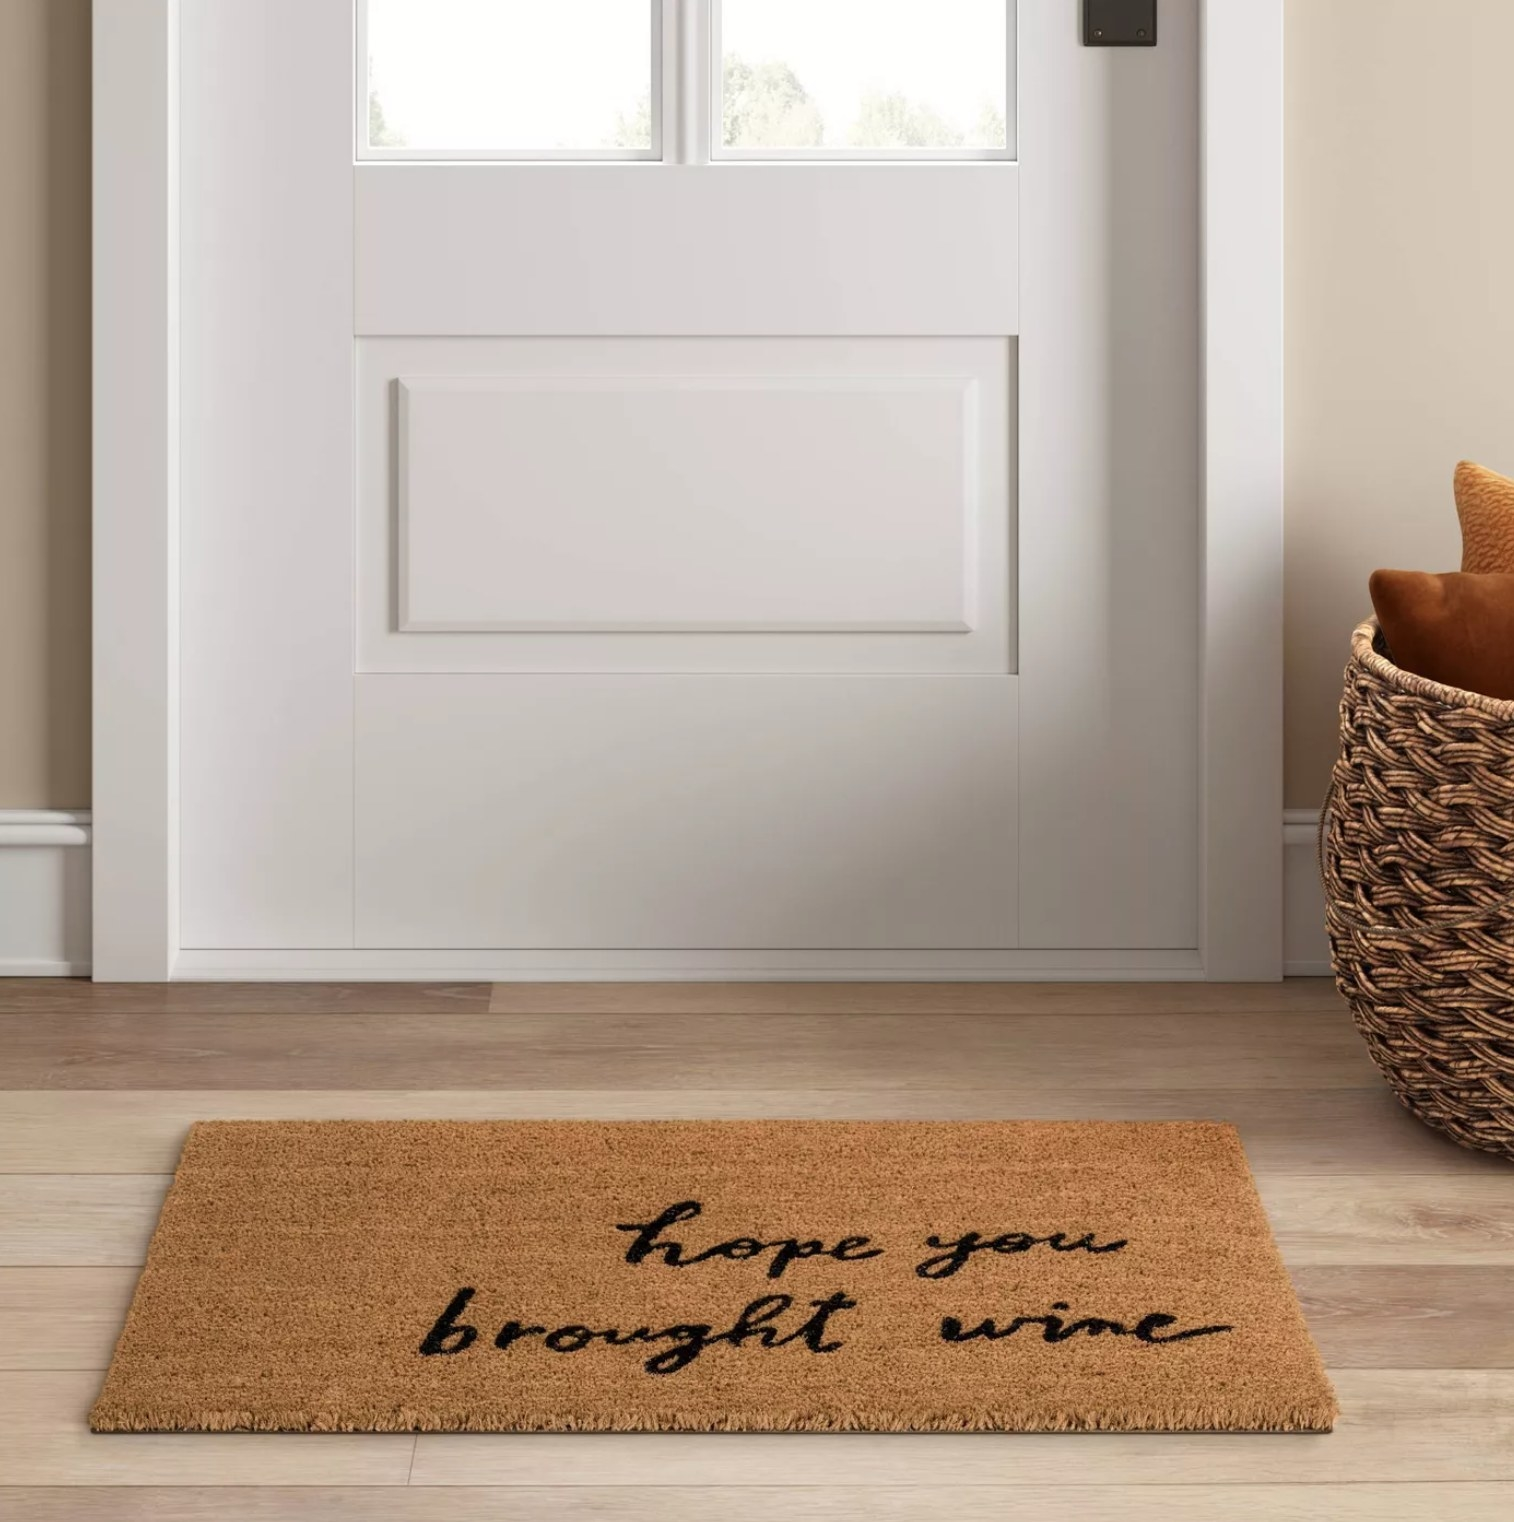 """The mat that says """"hope you brought wine"""" in front of a door"""